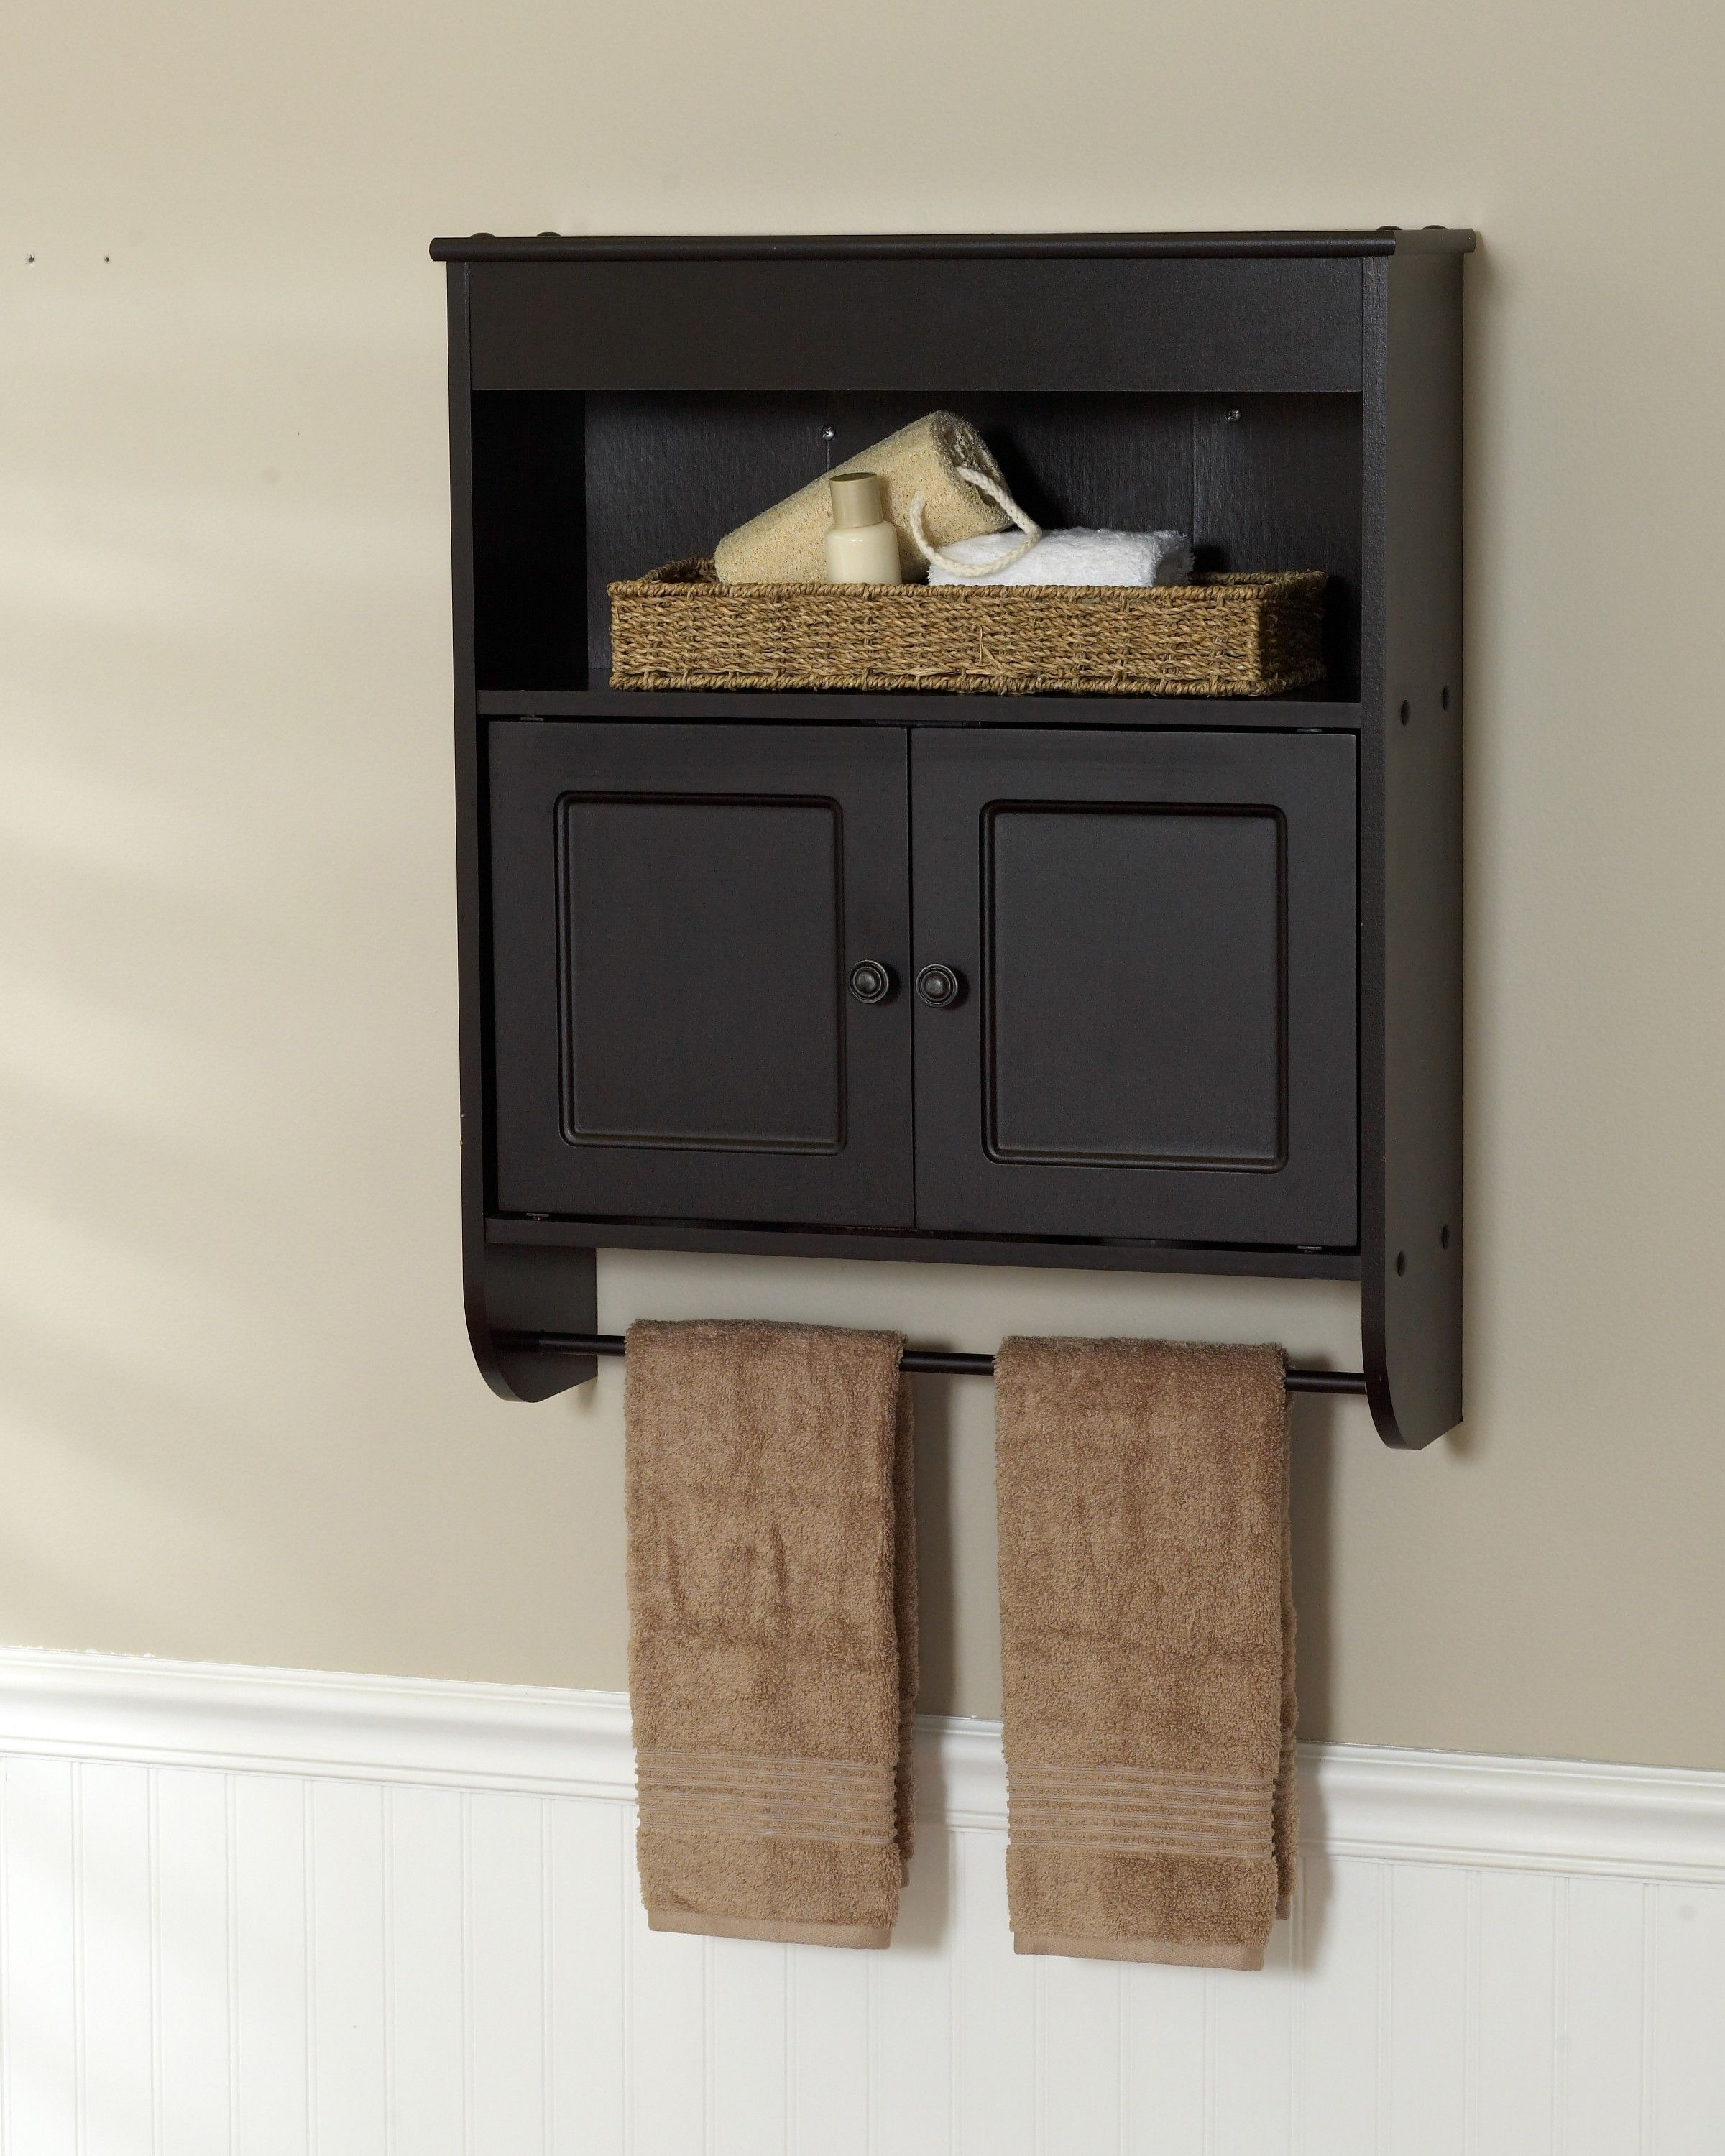 Espresso Cabinet With Towel Bar Zenith Home Corp ZPC - Towel storage shelves for small bathroom ideas